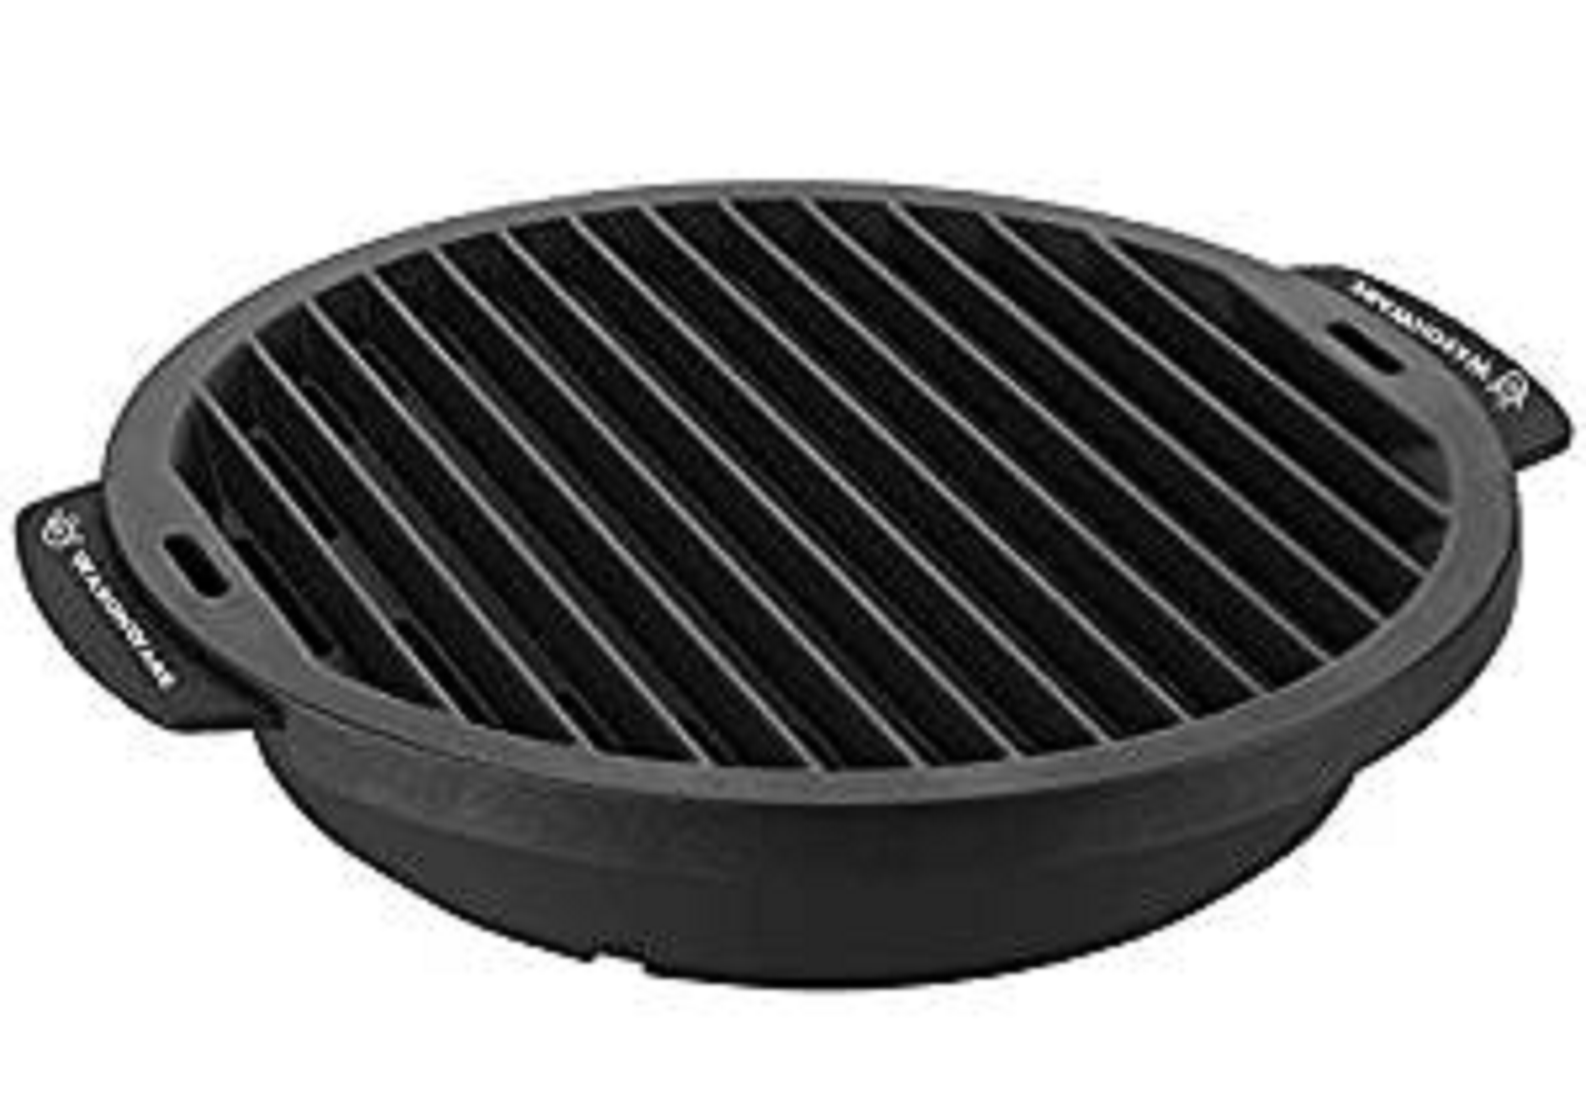 Waxonware Nonstick Grill Pan For Stove Top Chicken And Vegetables Grill Pan Food Club